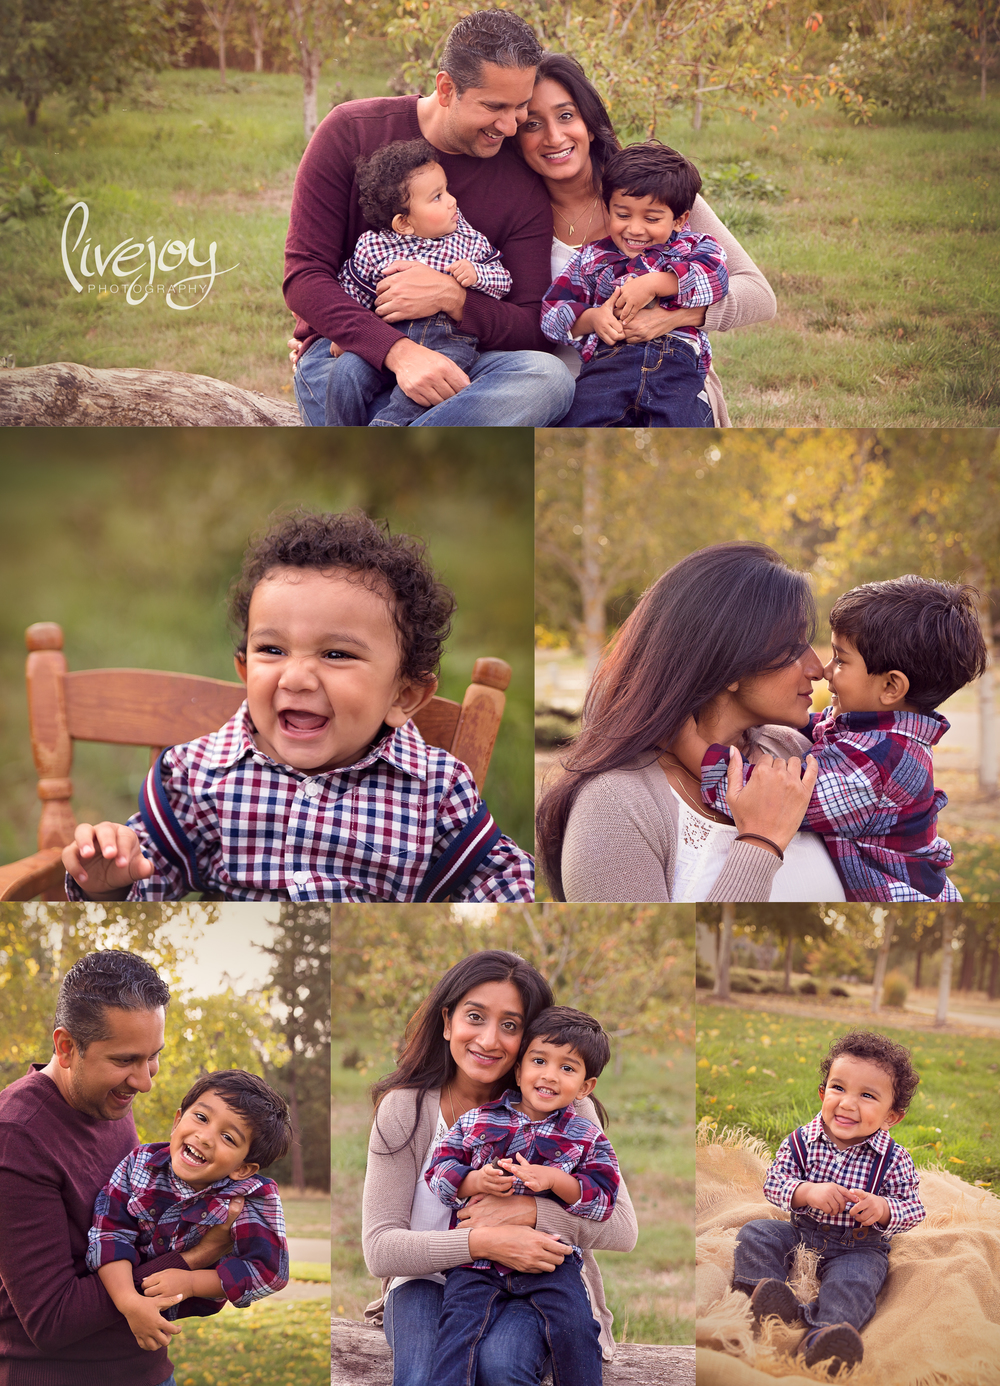 Family Photography | LiveJoy Photography | Oregon